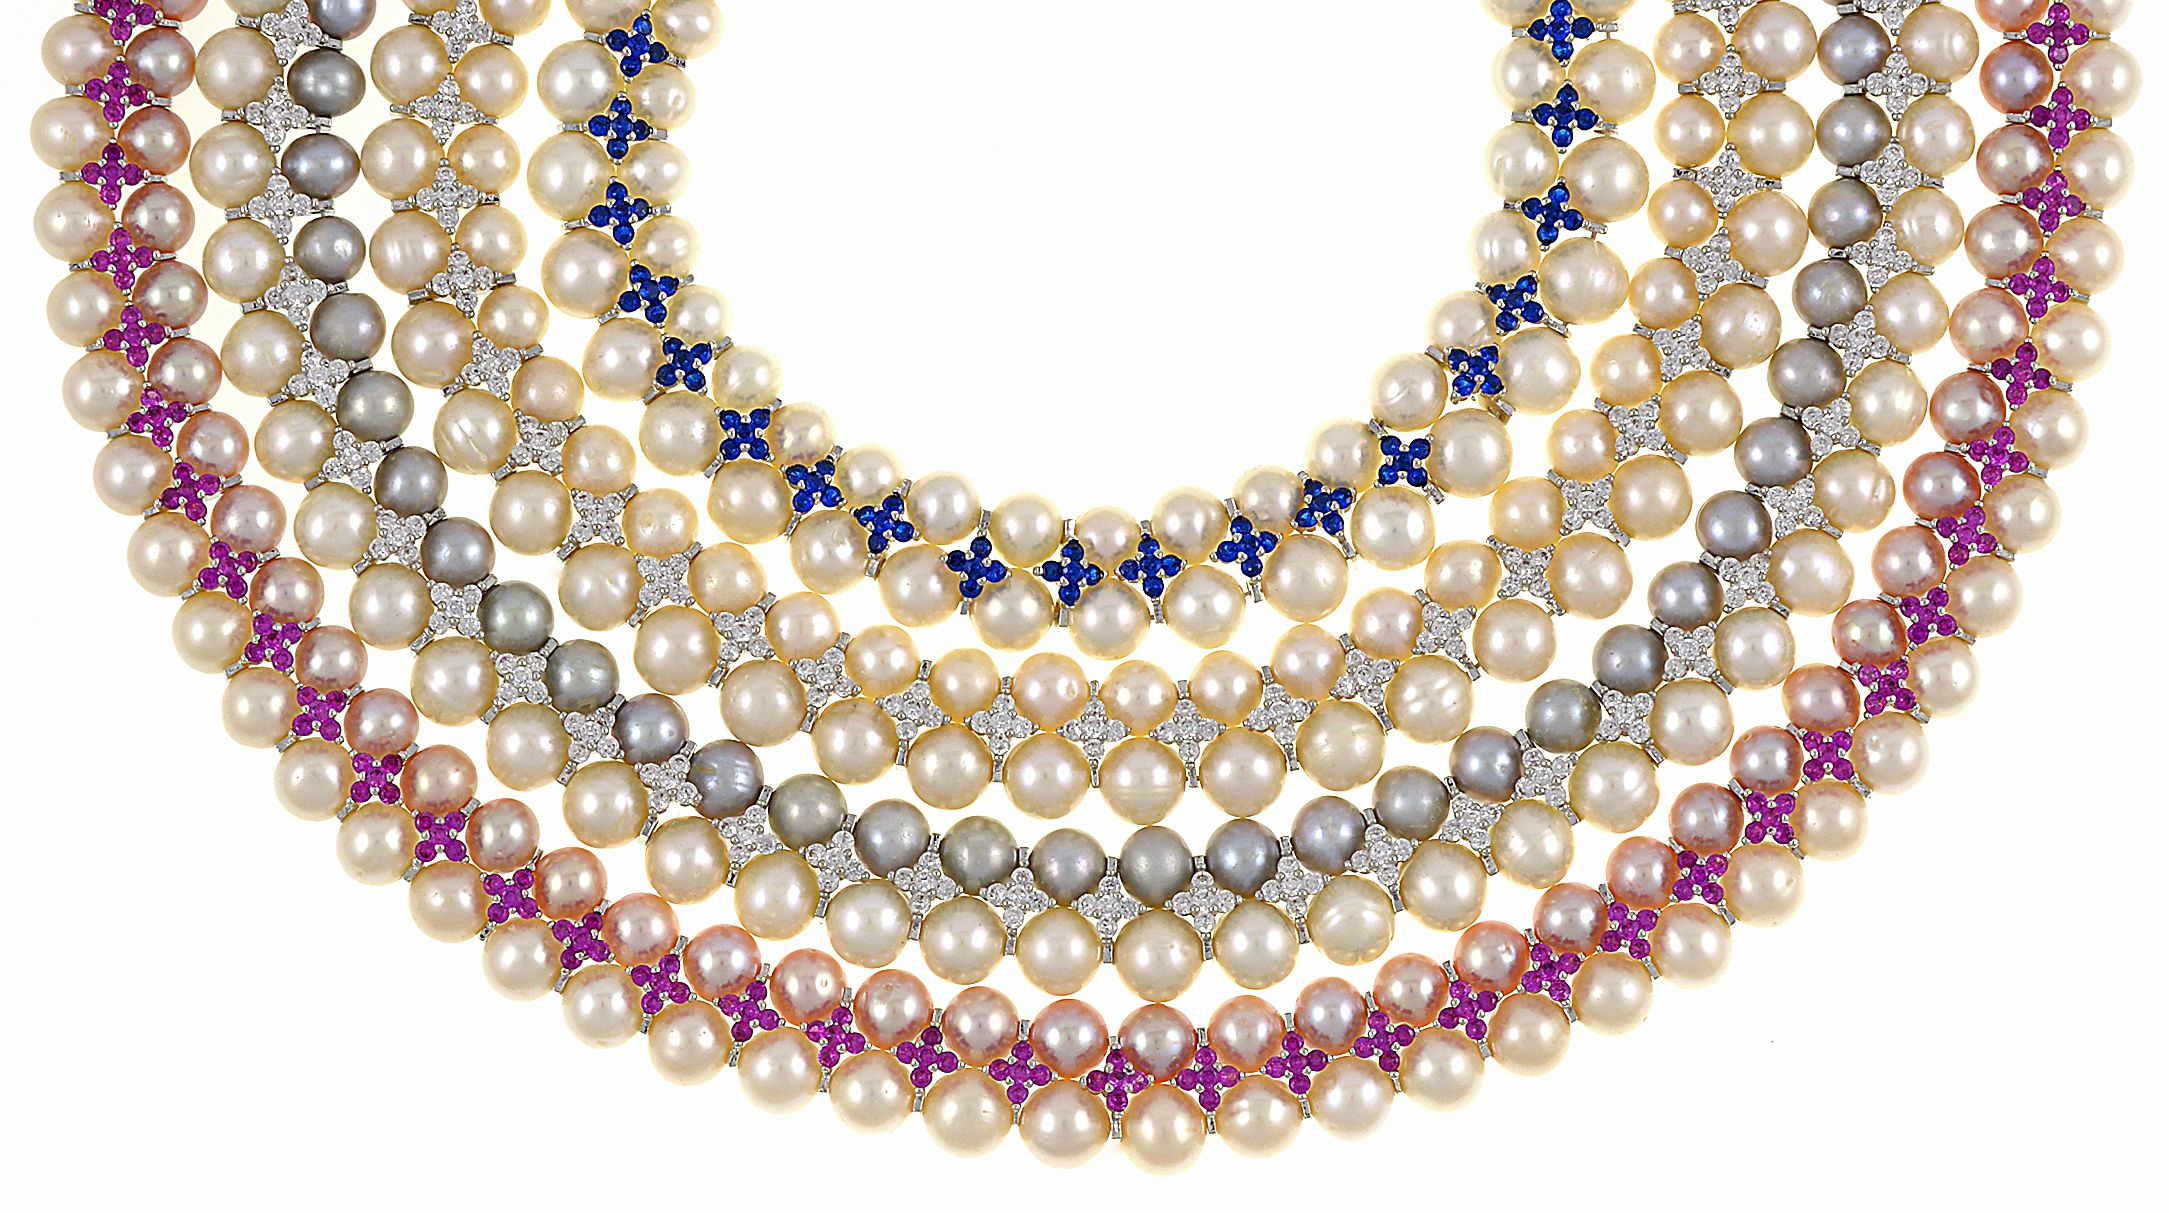 pearl products victoria s princess kingdom mg white pearls necklace